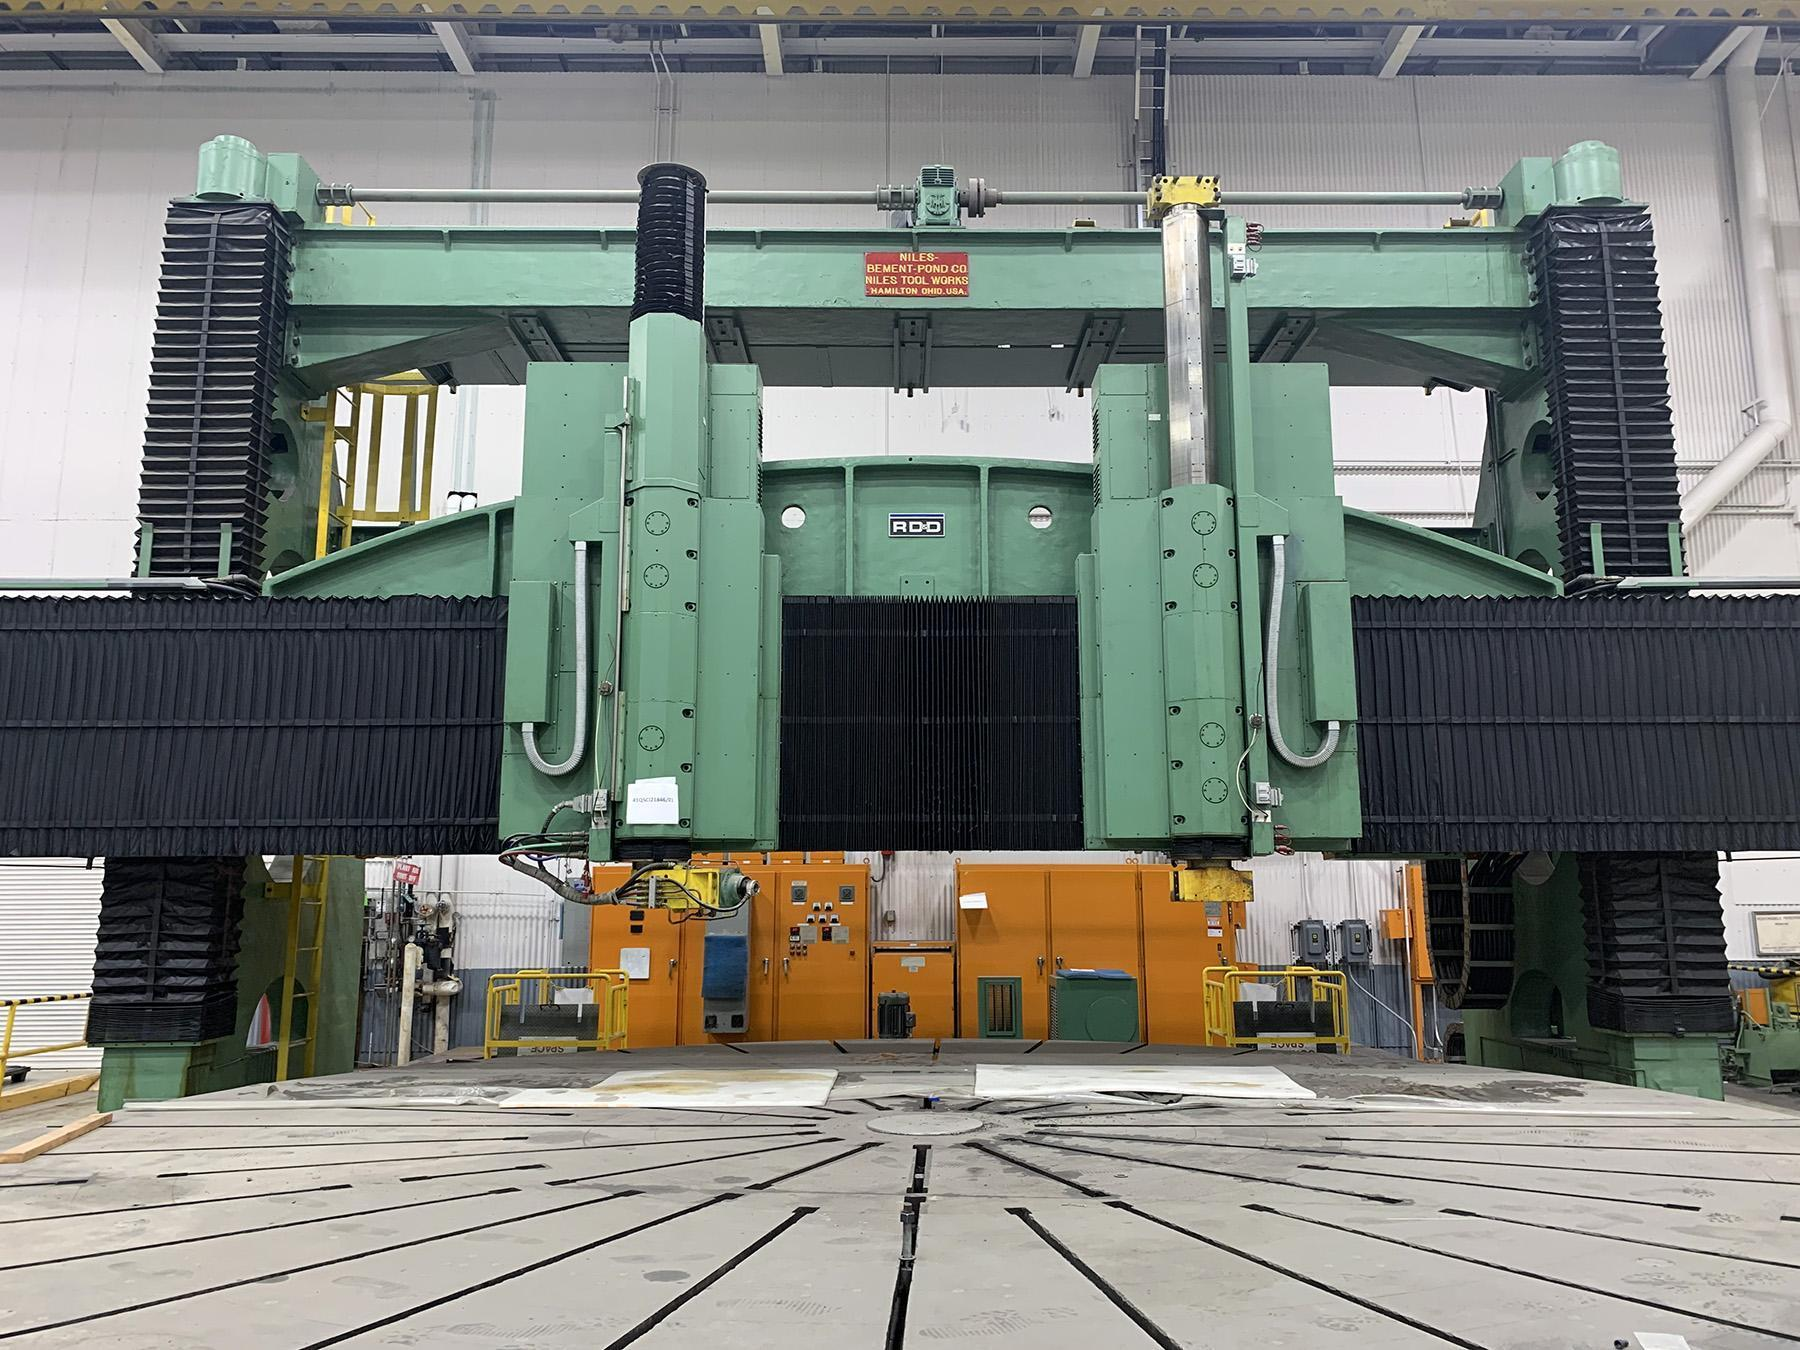 USED, 27' NILES CNC VERTICAL BORING MILL